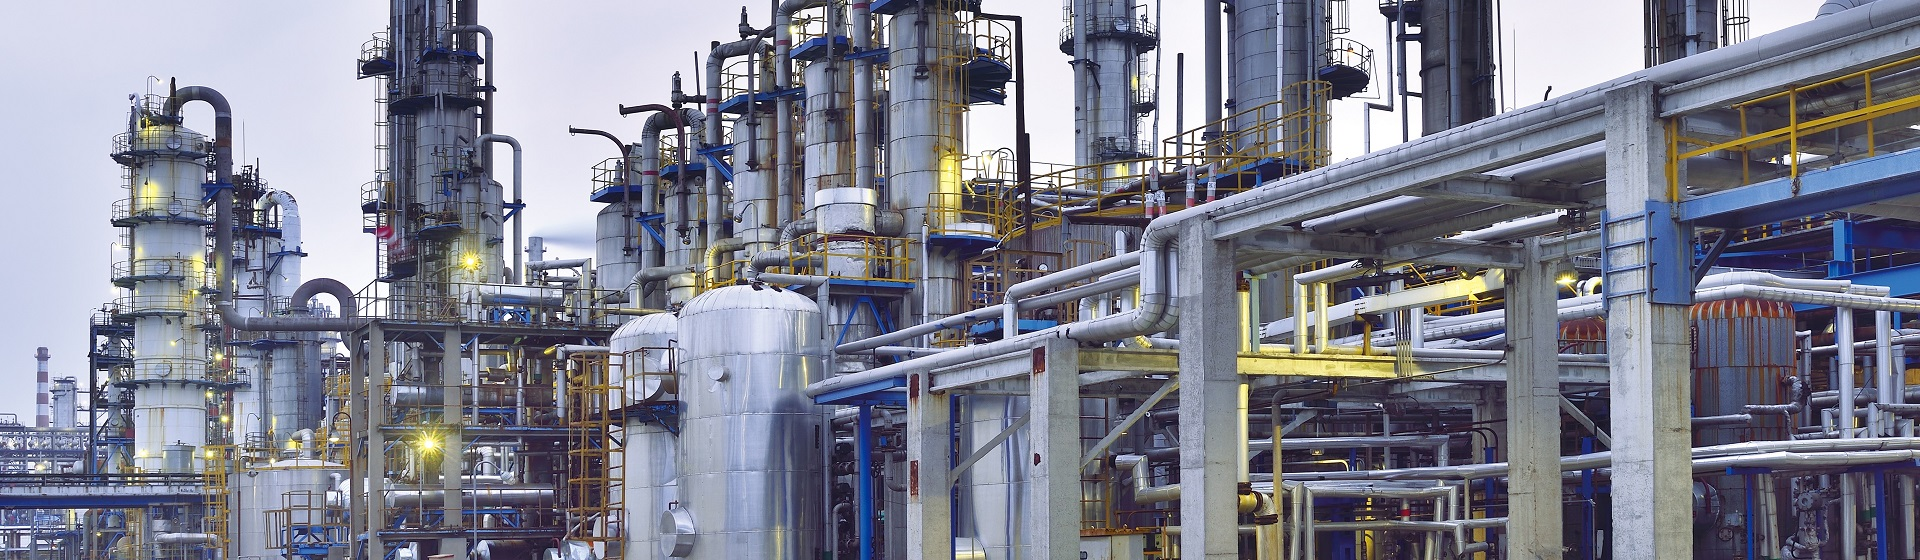 LESER safety valves for the Petrochemical Industry